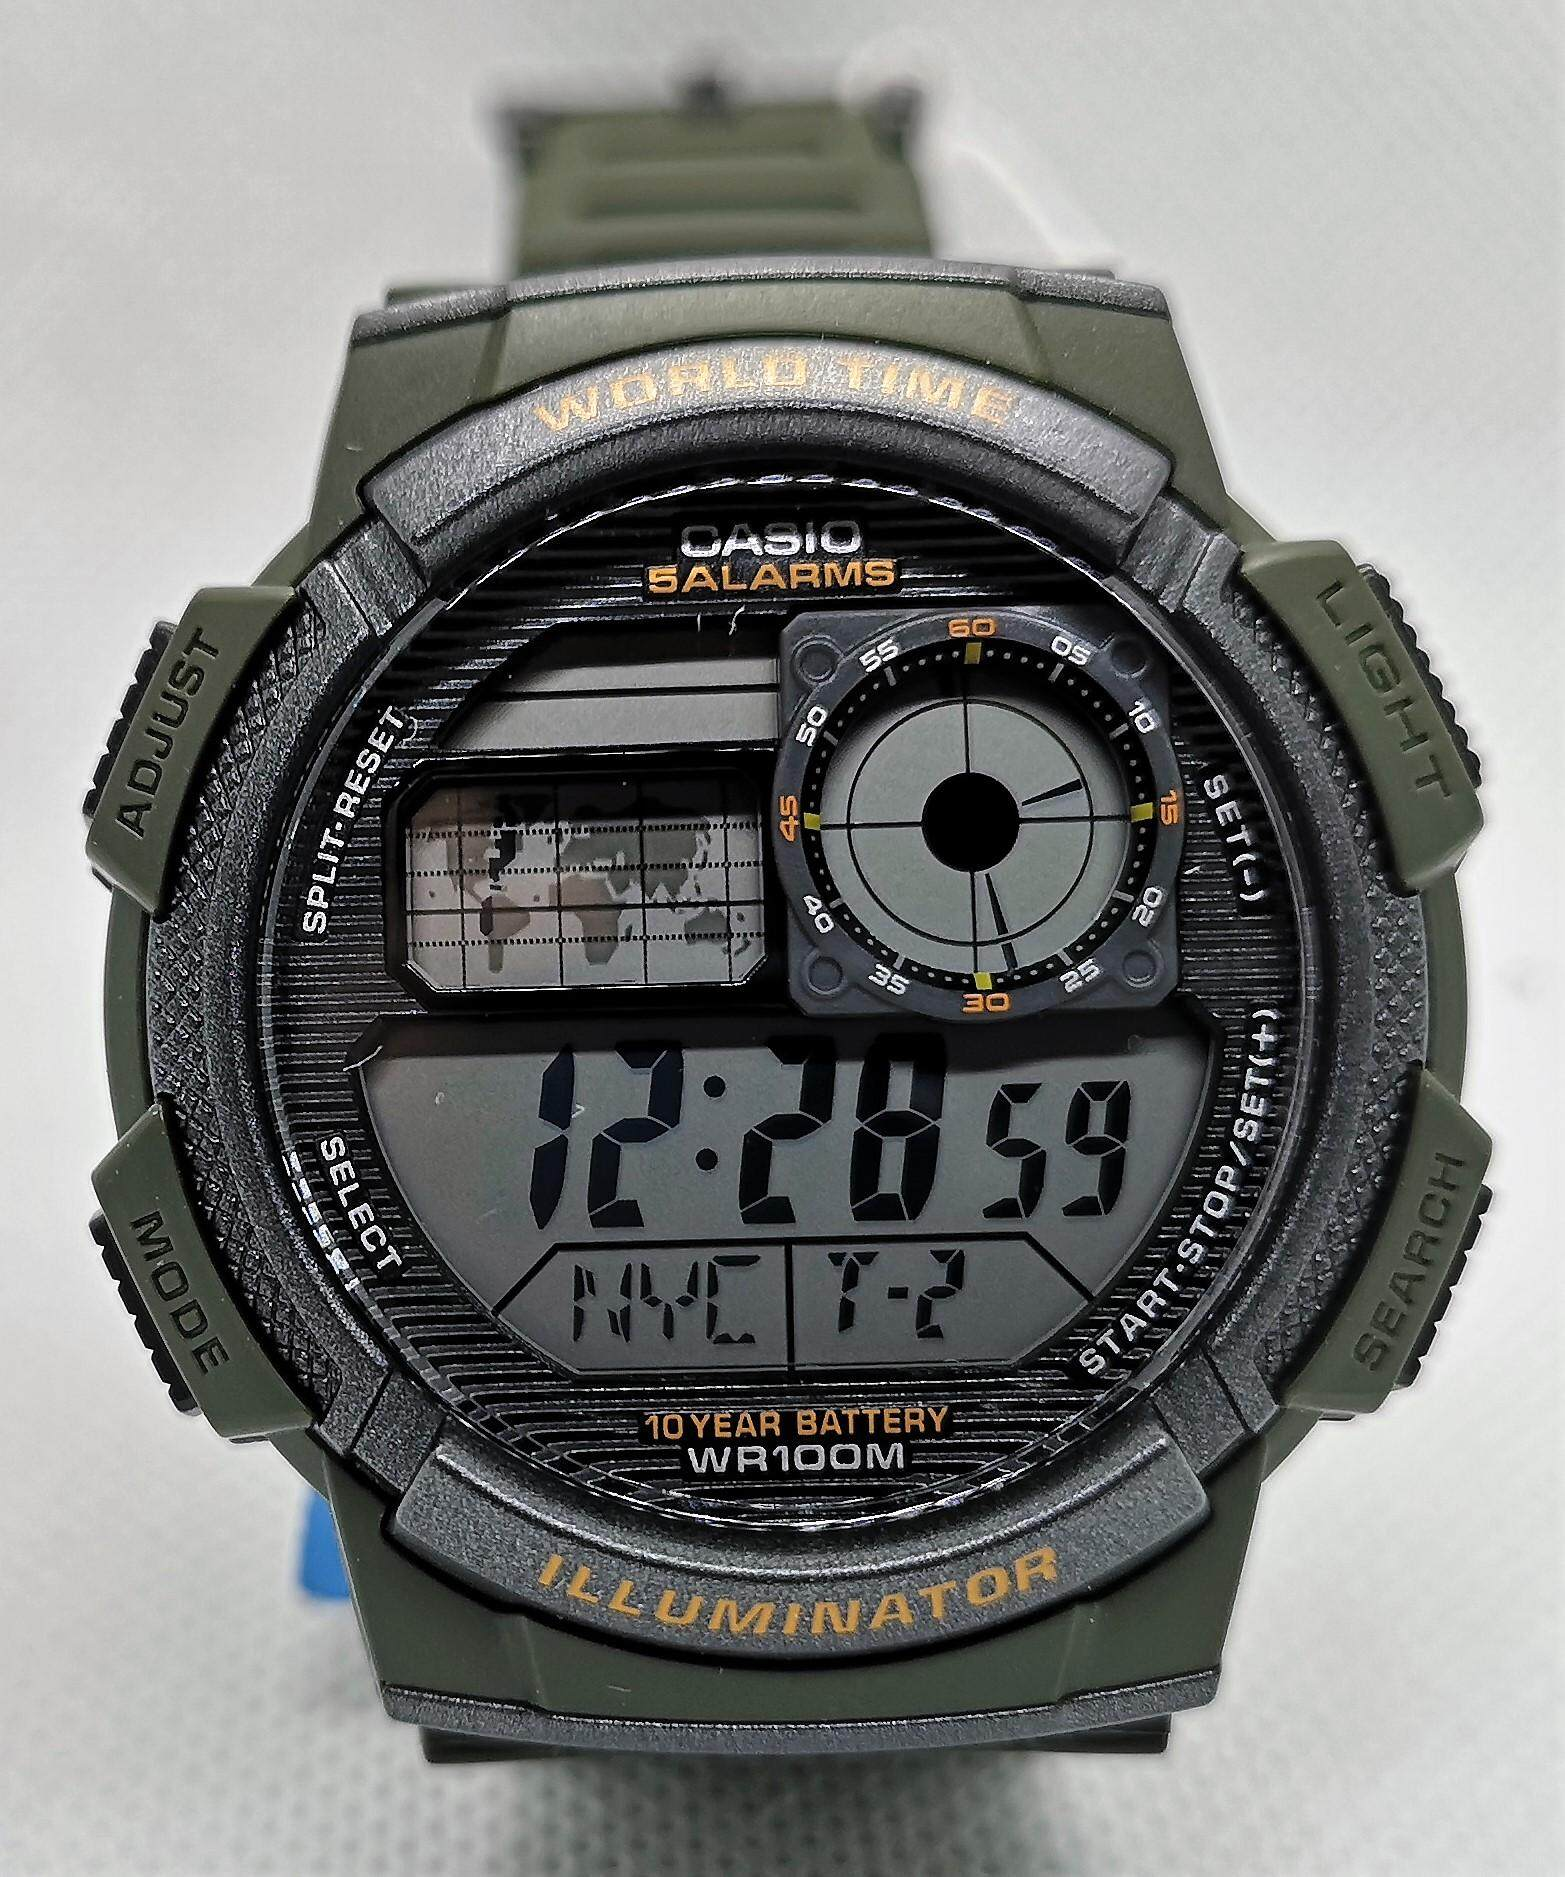 7905ea517b708 Casio Watches With Best Price at Lazada Malaysia